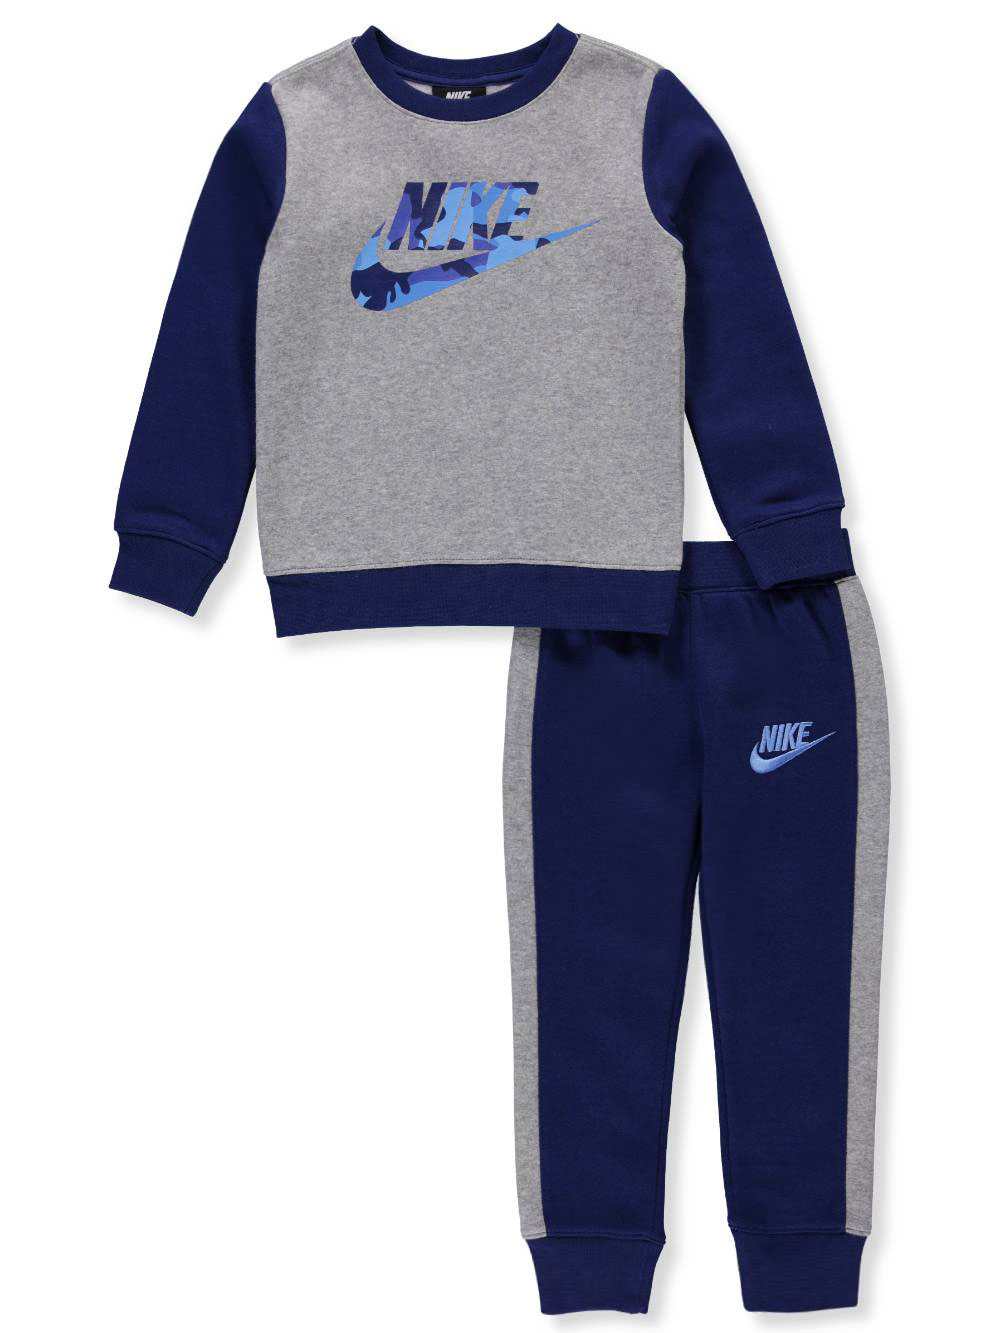 Size 5-6 Pant Sets for Boys